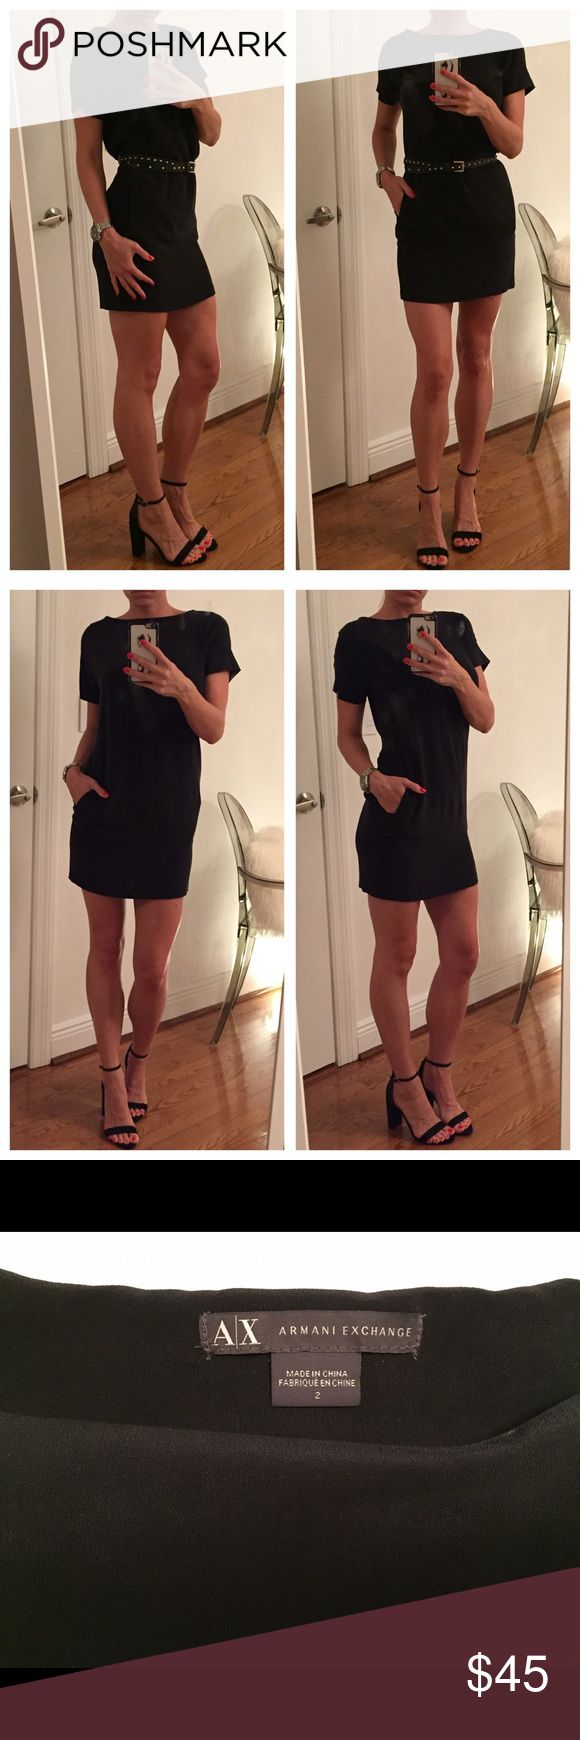 Armani Exchange Black Dress This gorgeous black dress from Armani Exchange is a size 2. Has 2 pockets on the side. Can be worn with a belt or not. Great dress for heels, sandals or flats. Super comfy and only worn once. A/X Armani Exchange Dresses